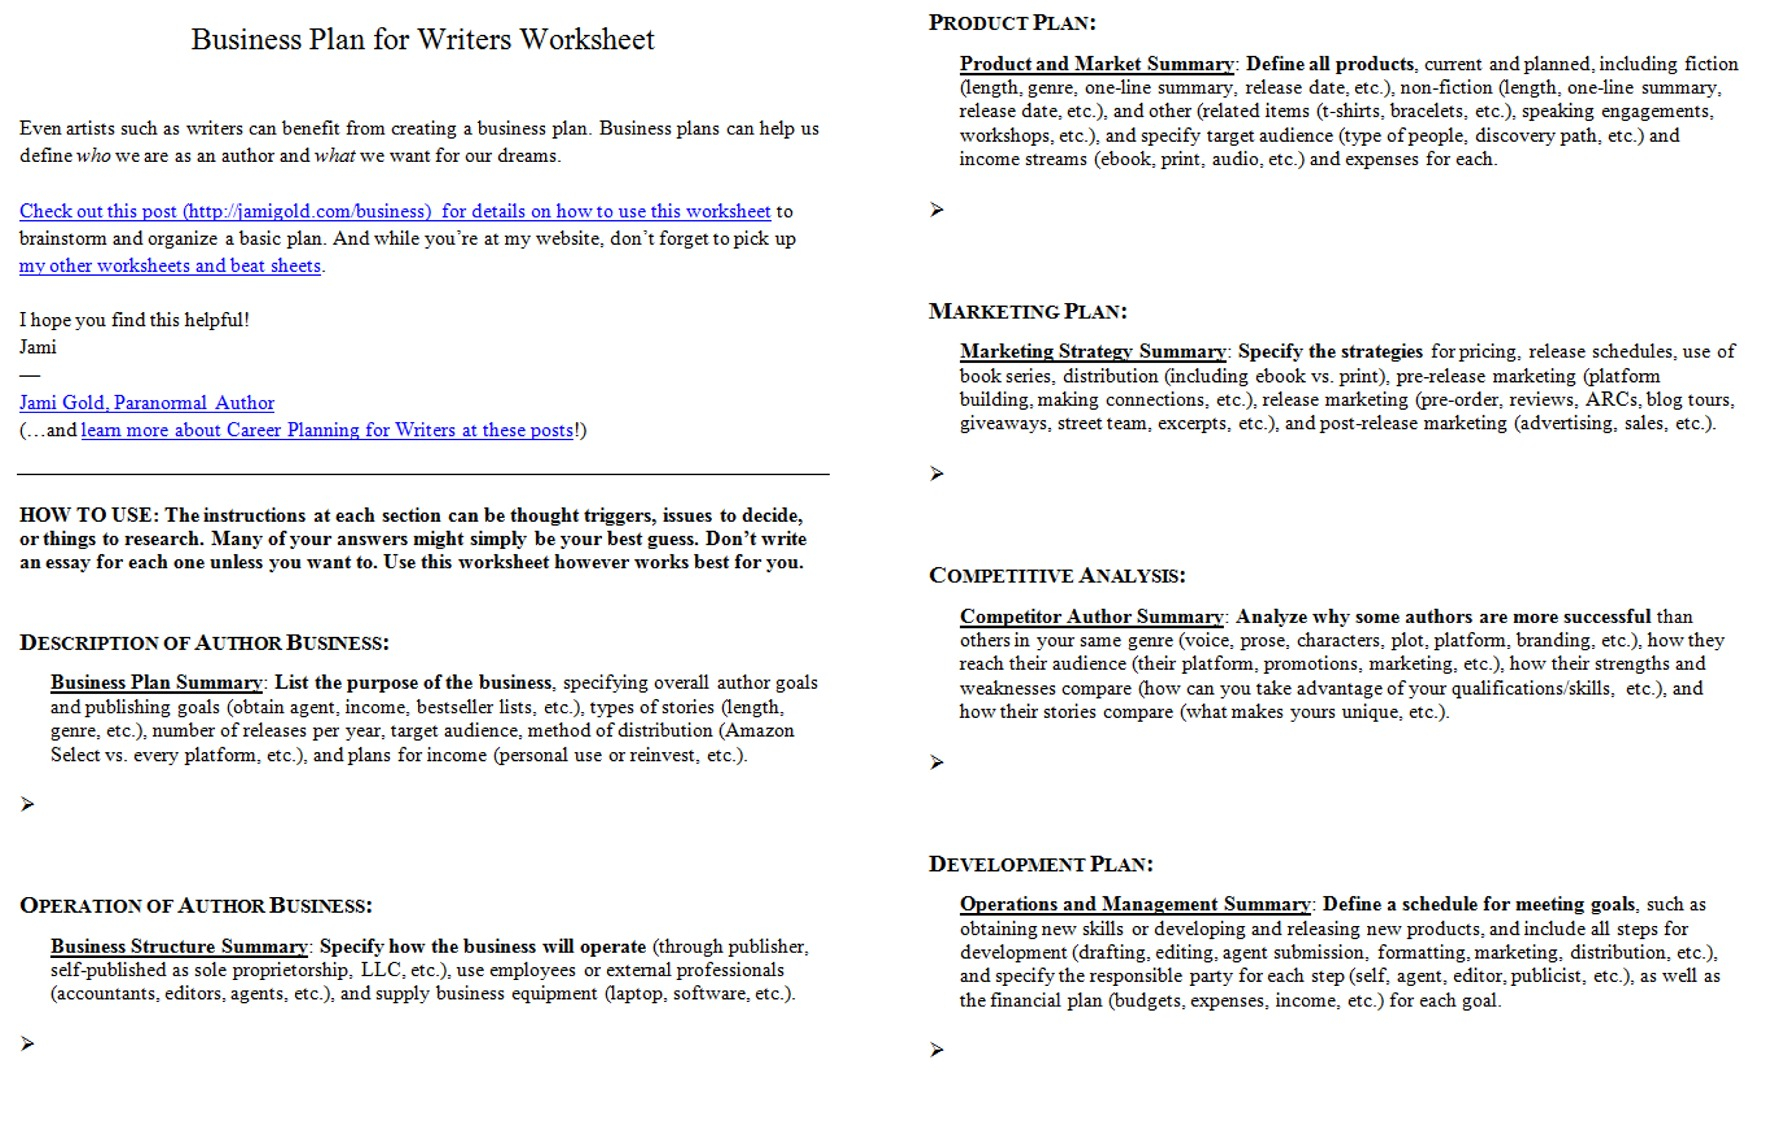 Weirdmailus  Remarkable Worksheets For Writers  Jami Gold Paranormal Author With Magnificent Screen Shot Of Both Pages Of The Business Plan For Writers Worksheet With Cool Math Worksheets Year  Also Simple Present Vs Present Progressive Worksheets In Addition Halloween Homework Worksheets And Quotation Marks Worksheet Nd Grade As Well As Noun Worksheets For Th Grade Additionally Tens Ones Worksheet From Jamigoldcom With Weirdmailus  Magnificent Worksheets For Writers  Jami Gold Paranormal Author With Cool Screen Shot Of Both Pages Of The Business Plan For Writers Worksheet And Remarkable Math Worksheets Year  Also Simple Present Vs Present Progressive Worksheets In Addition Halloween Homework Worksheets From Jamigoldcom